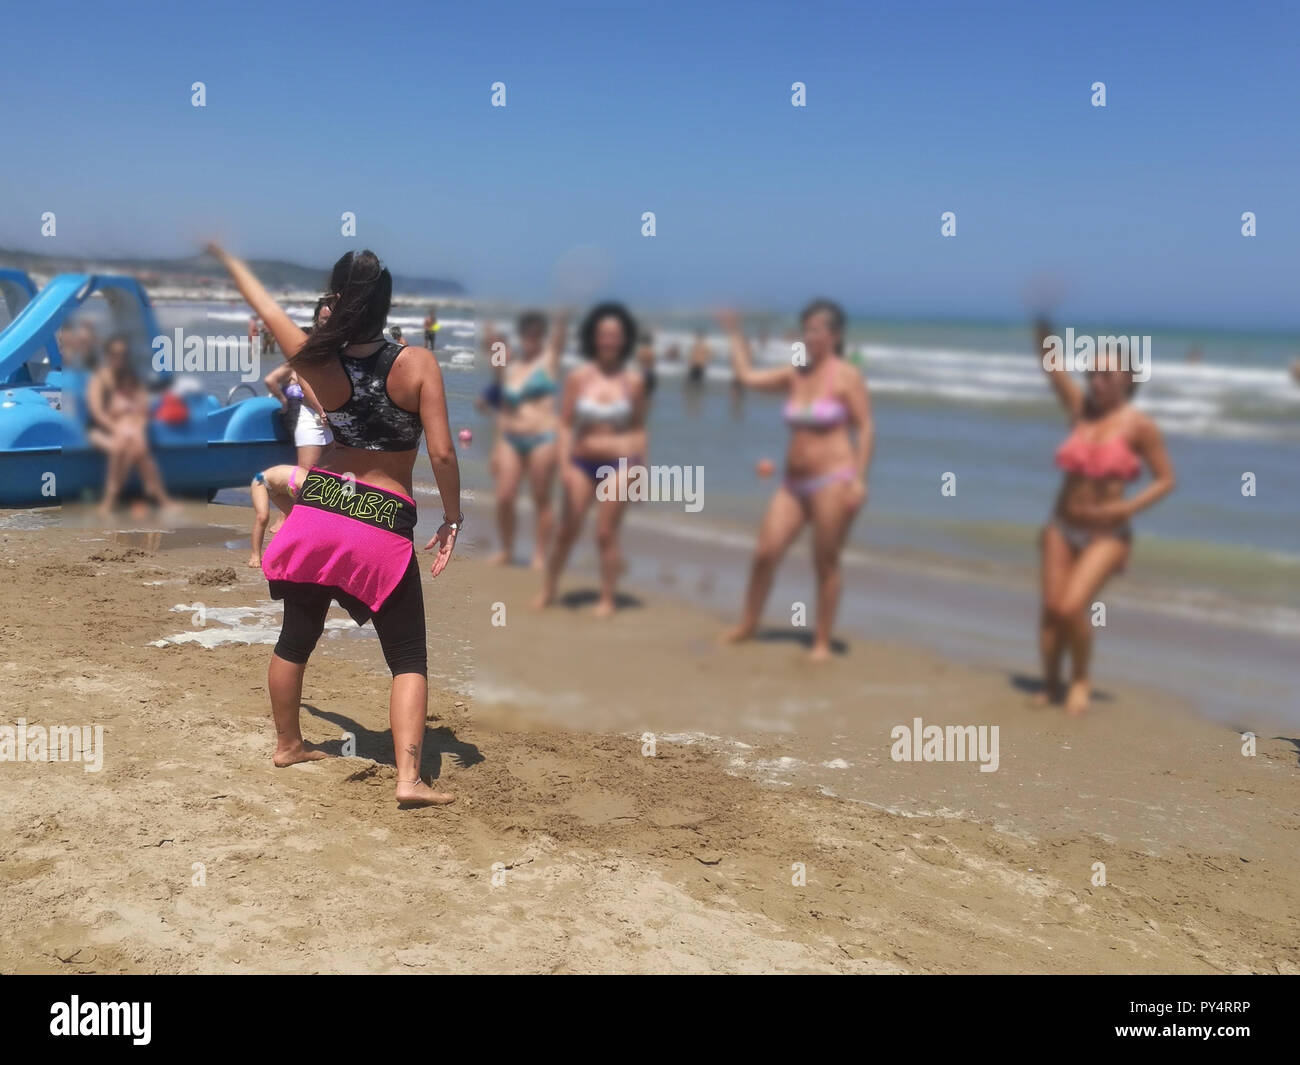 Woman Doing Zoomba Work Out Excercise on the Beach - Stock Image